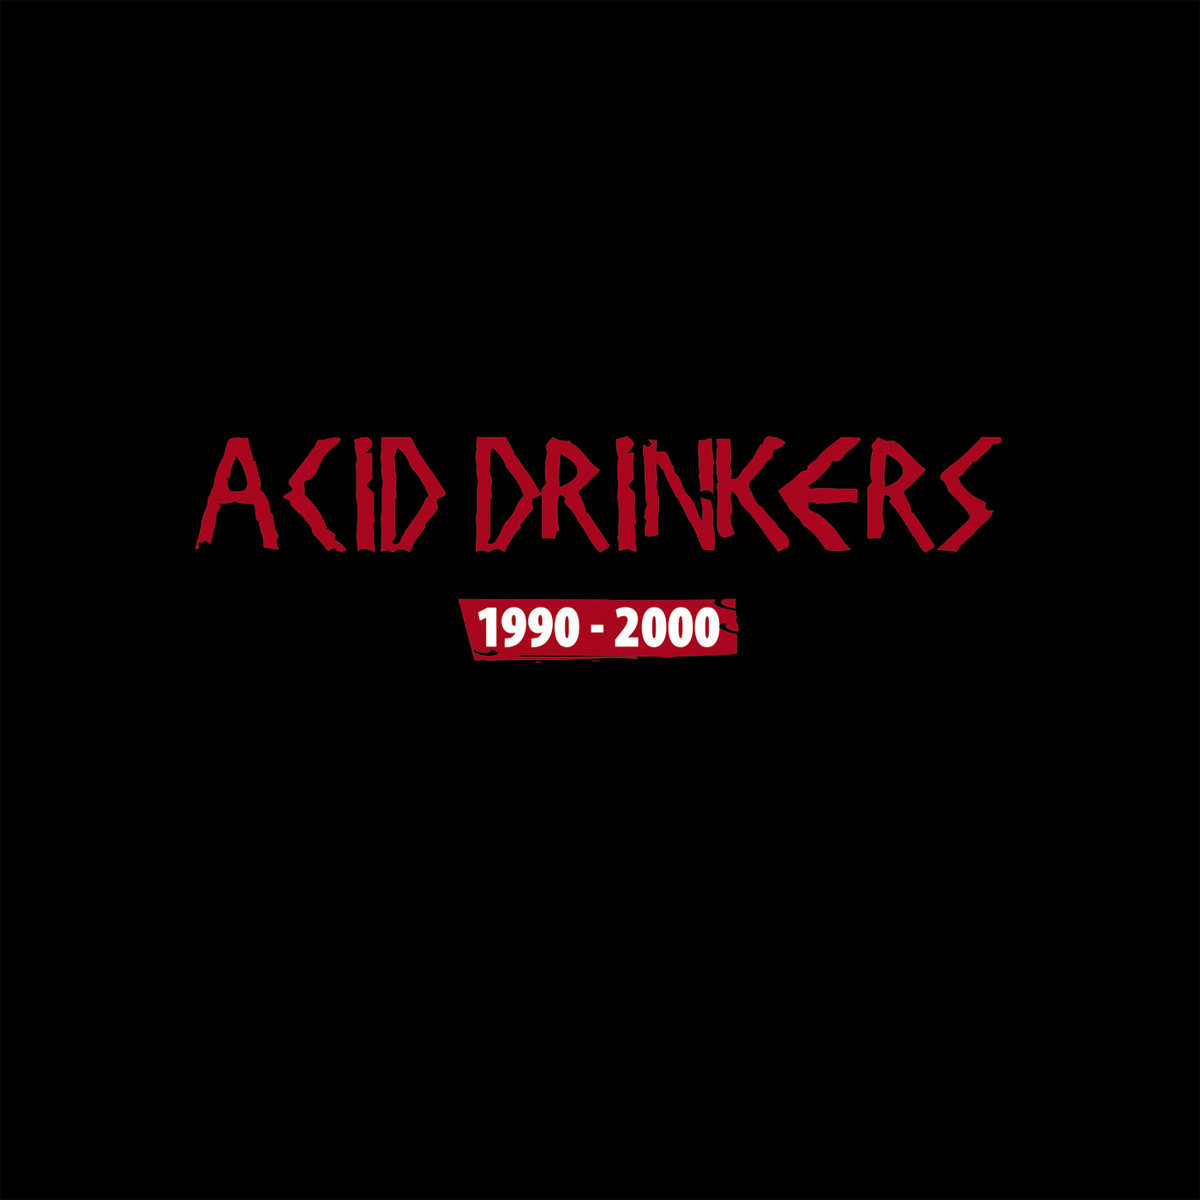 ACID DRINKERS - 1990-2000 (2019) [CD 3-STRIP TEASE (1992)] [WMA] [FALLEN ANGEL]